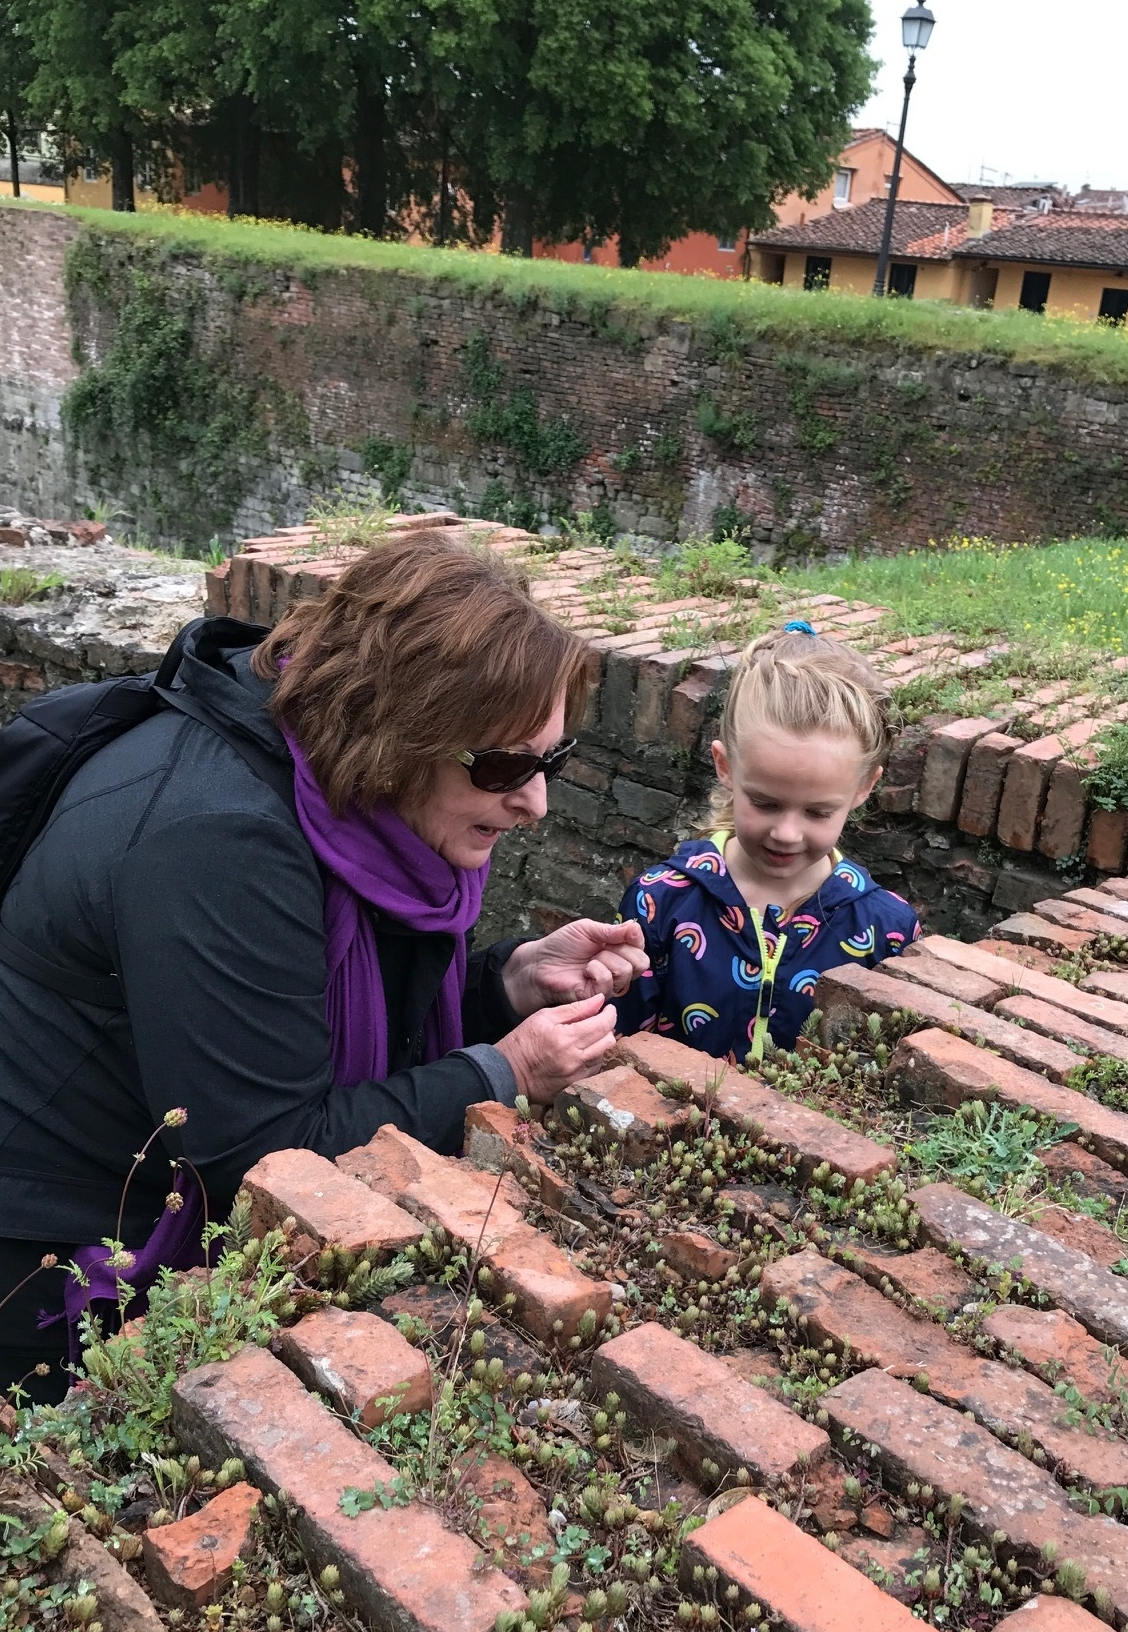 Edie and me, exploring plant life on the walls. Photo courtesy of H. Baker